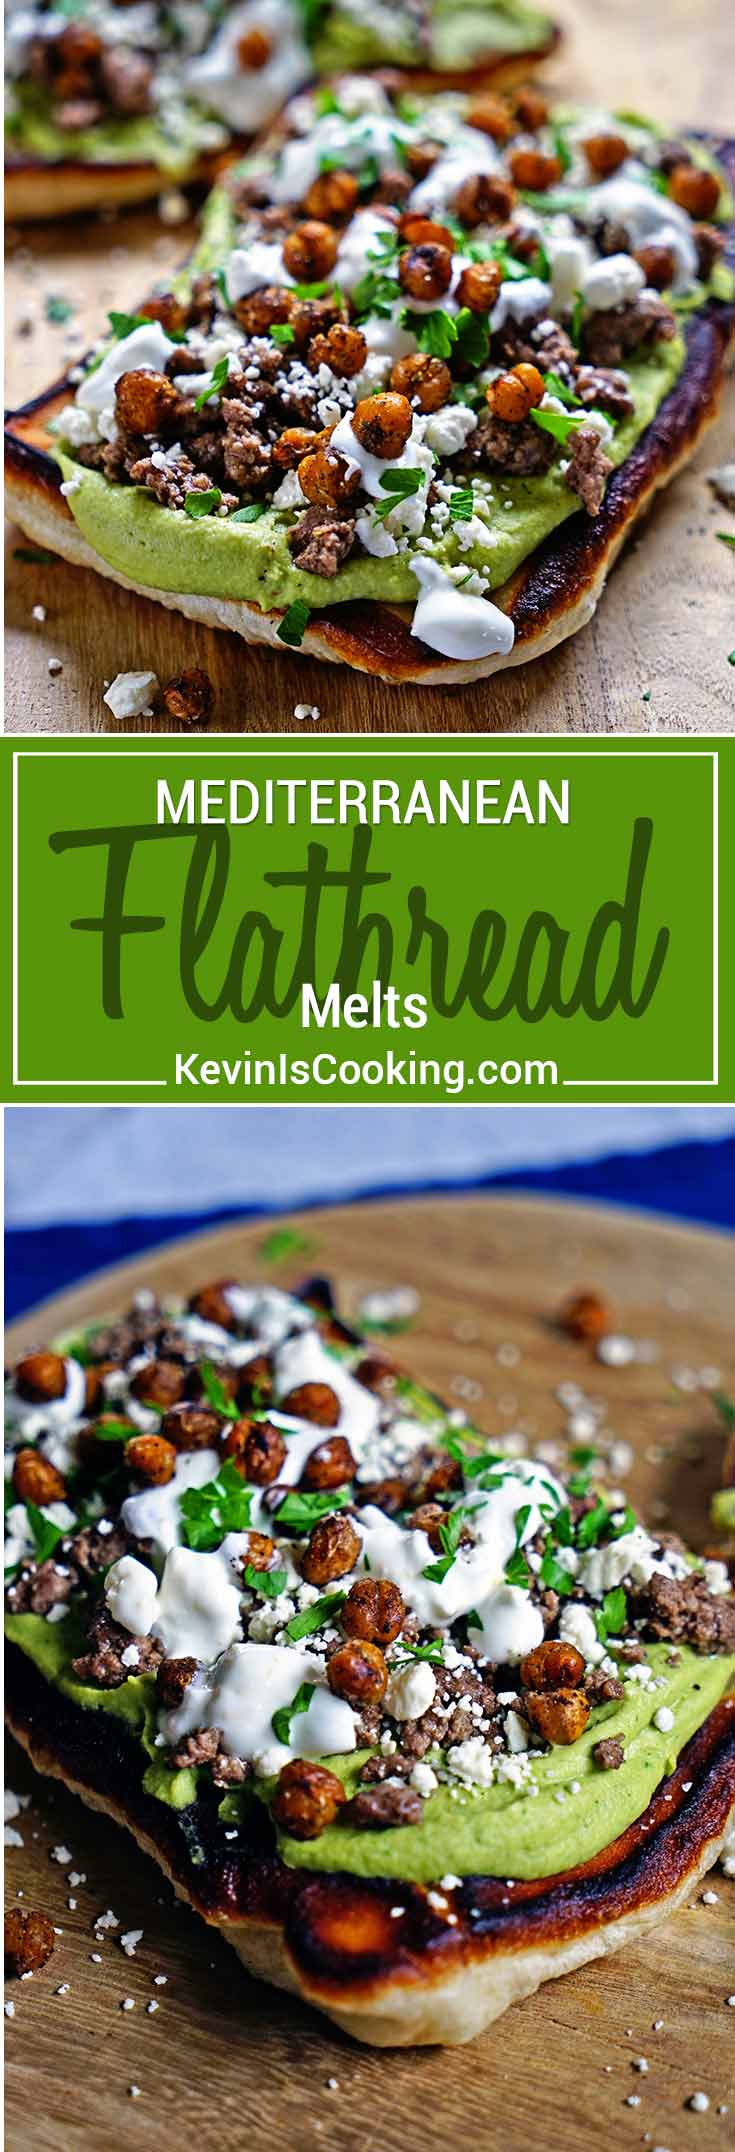 These Mediterranean Flatbread Melts are super easy, made with browned lamb, hummus and feta cheese and the flatbread is made with refrigerated pizza dough.